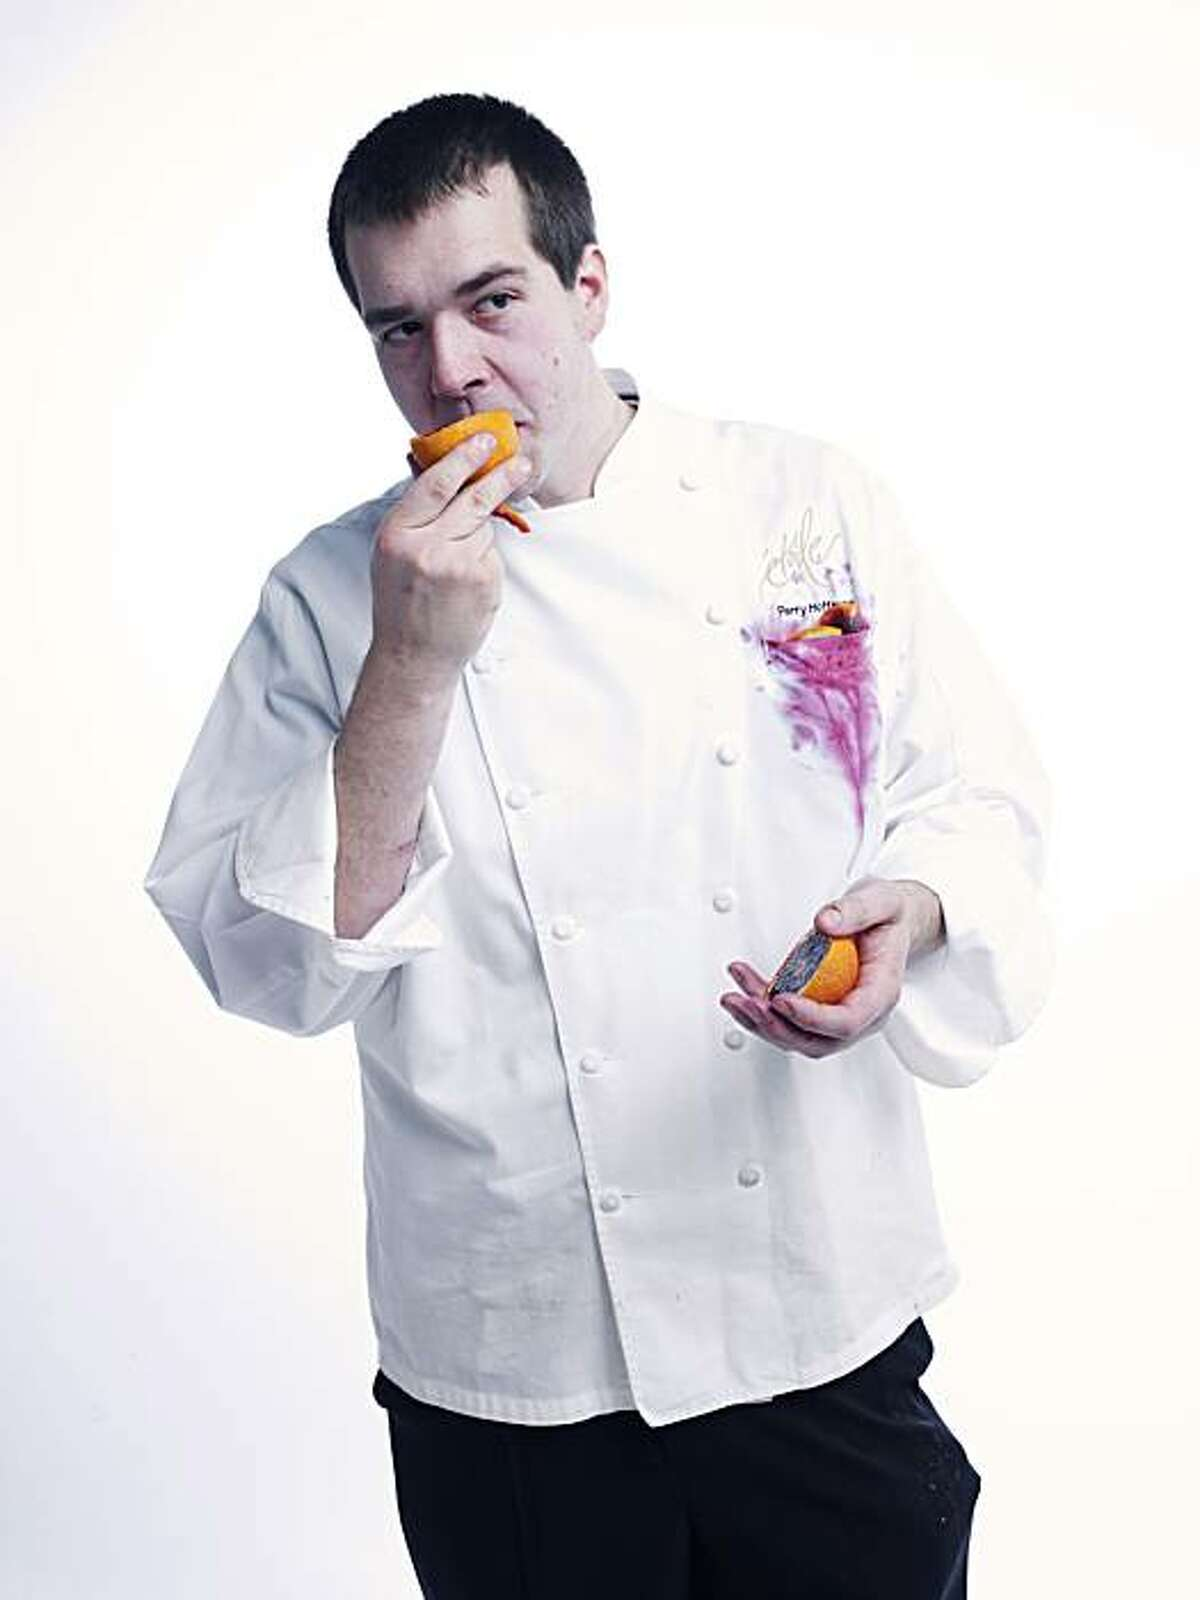 RISINGSTARS_HOFFMAN07_JOHNLEEPICTURES.JPG Perry Hoffman, chef at Etoile in Yountville. Photo taken in the Chronicle photo studio. By JOHN LEE/SPECIAL TO THE CHRONICLE